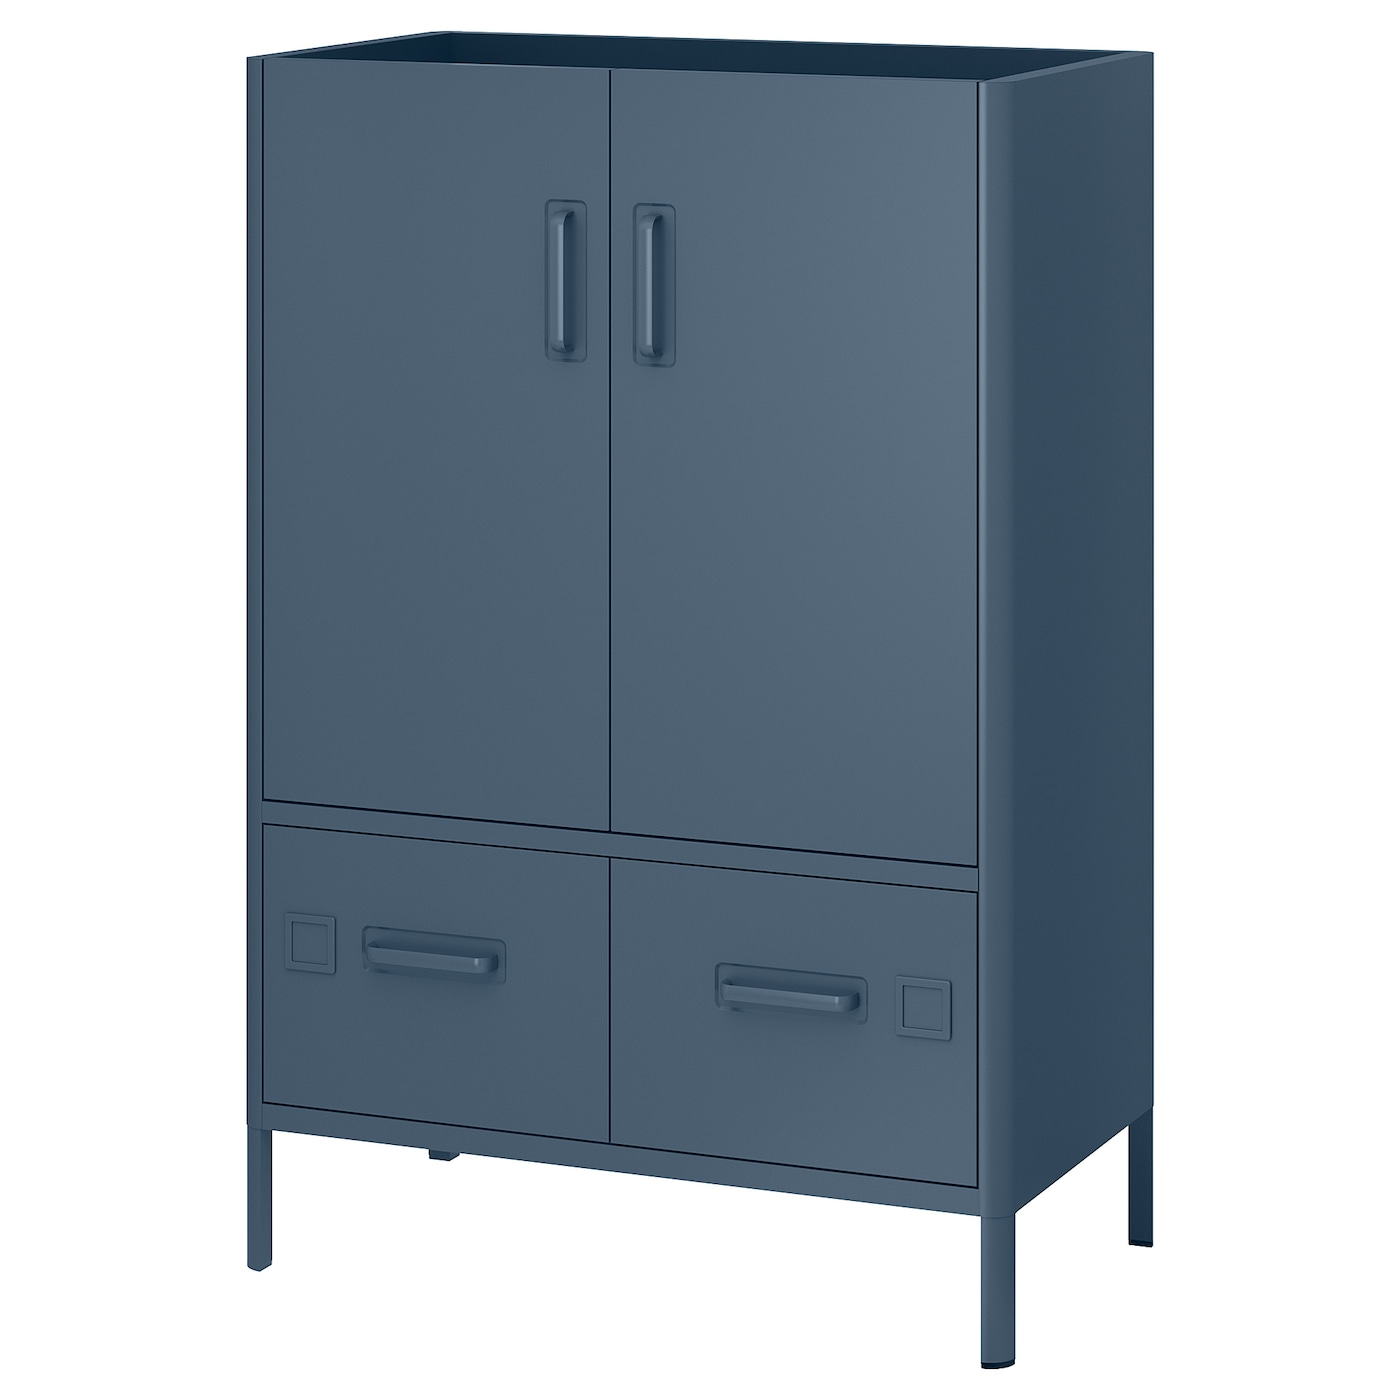 Ikea idåsen cabinet with doors and drawers integrated damper makes doors close silently and gently